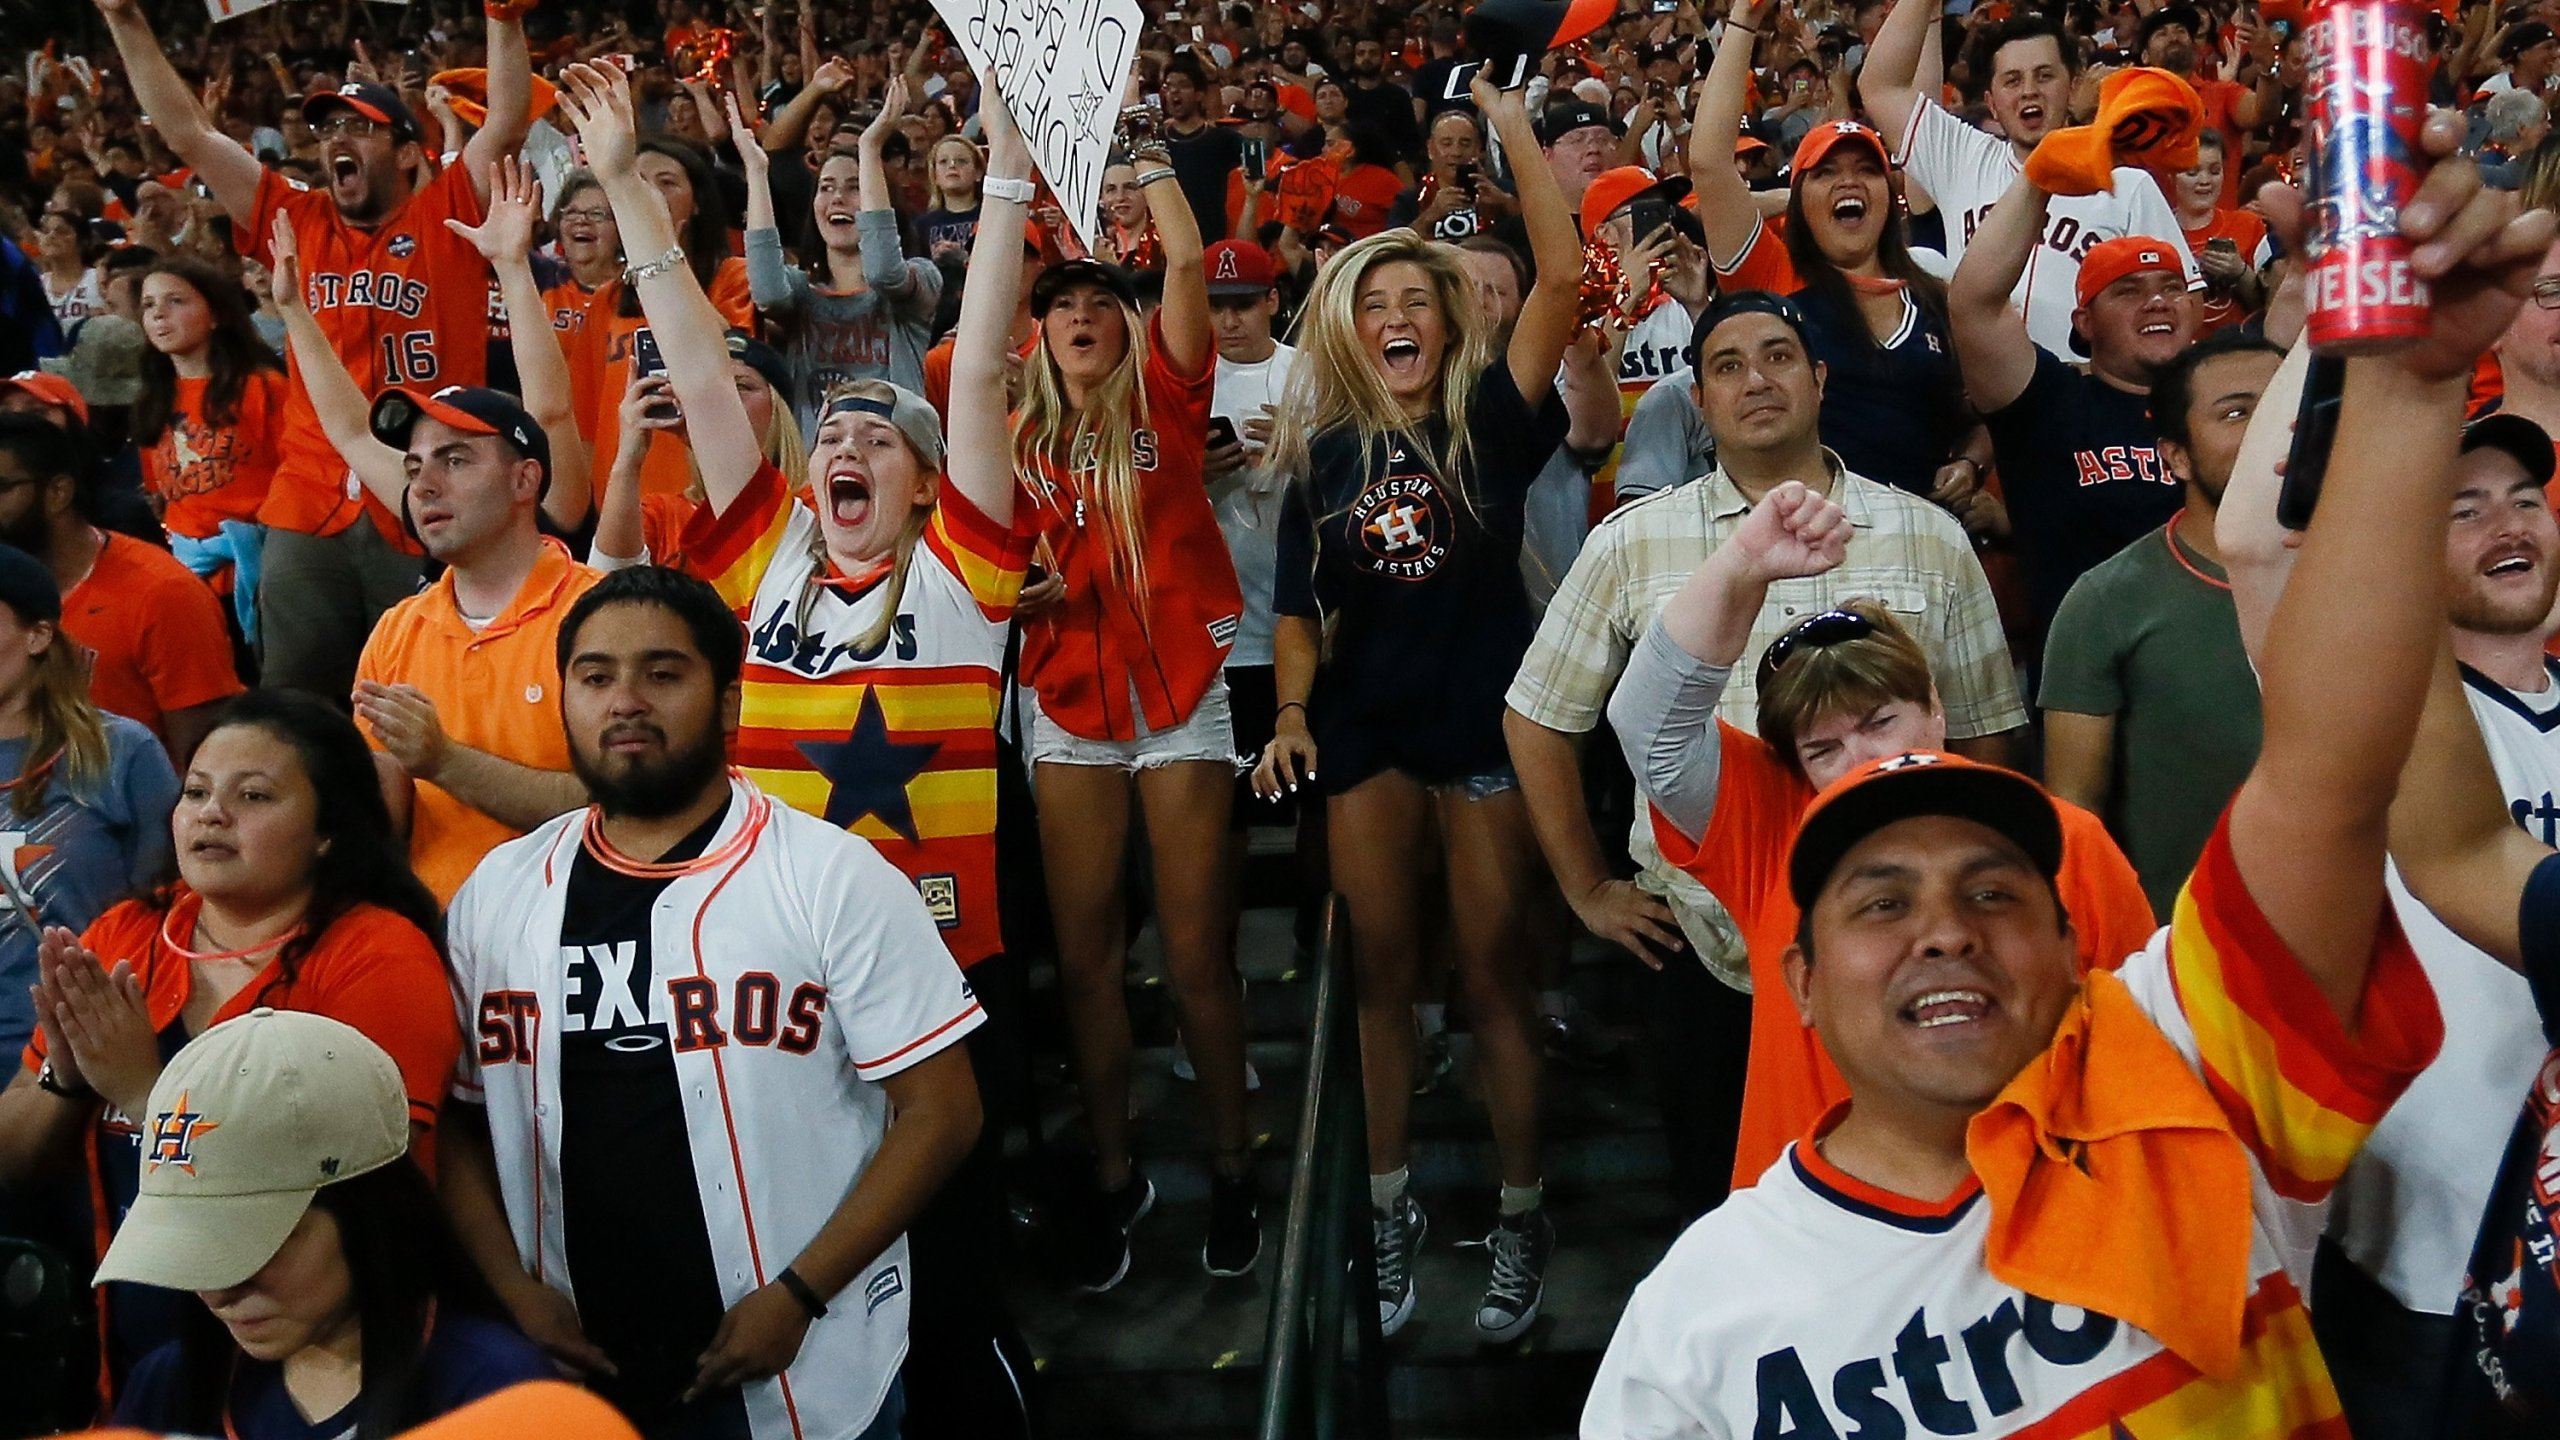 Houston fans celebrate after the Houston Astros defeated the Los Angeles Dodgers in Game 7 of the World Series during a Houston Astros World Series watch party at Minute Maid Park on Nov. 1, 2017, in Houston. (Credit: Bob Levey/Getty Images)